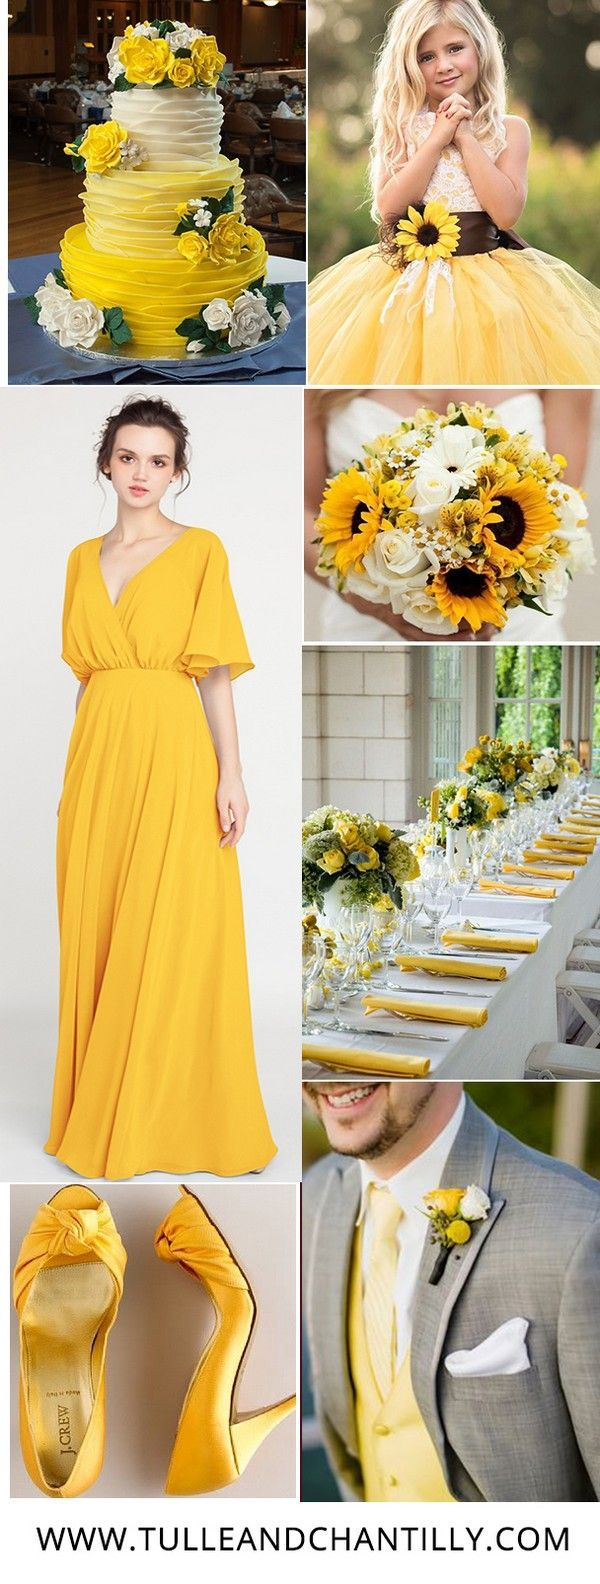 V Neck Sleeved Long Bridesmaid Dress With Open Back Tbqp385 Yellow Bridesmaid Dresses Yellow Bridesmaids Yellow Wedding Dress [ 1584 x 600 Pixel ]